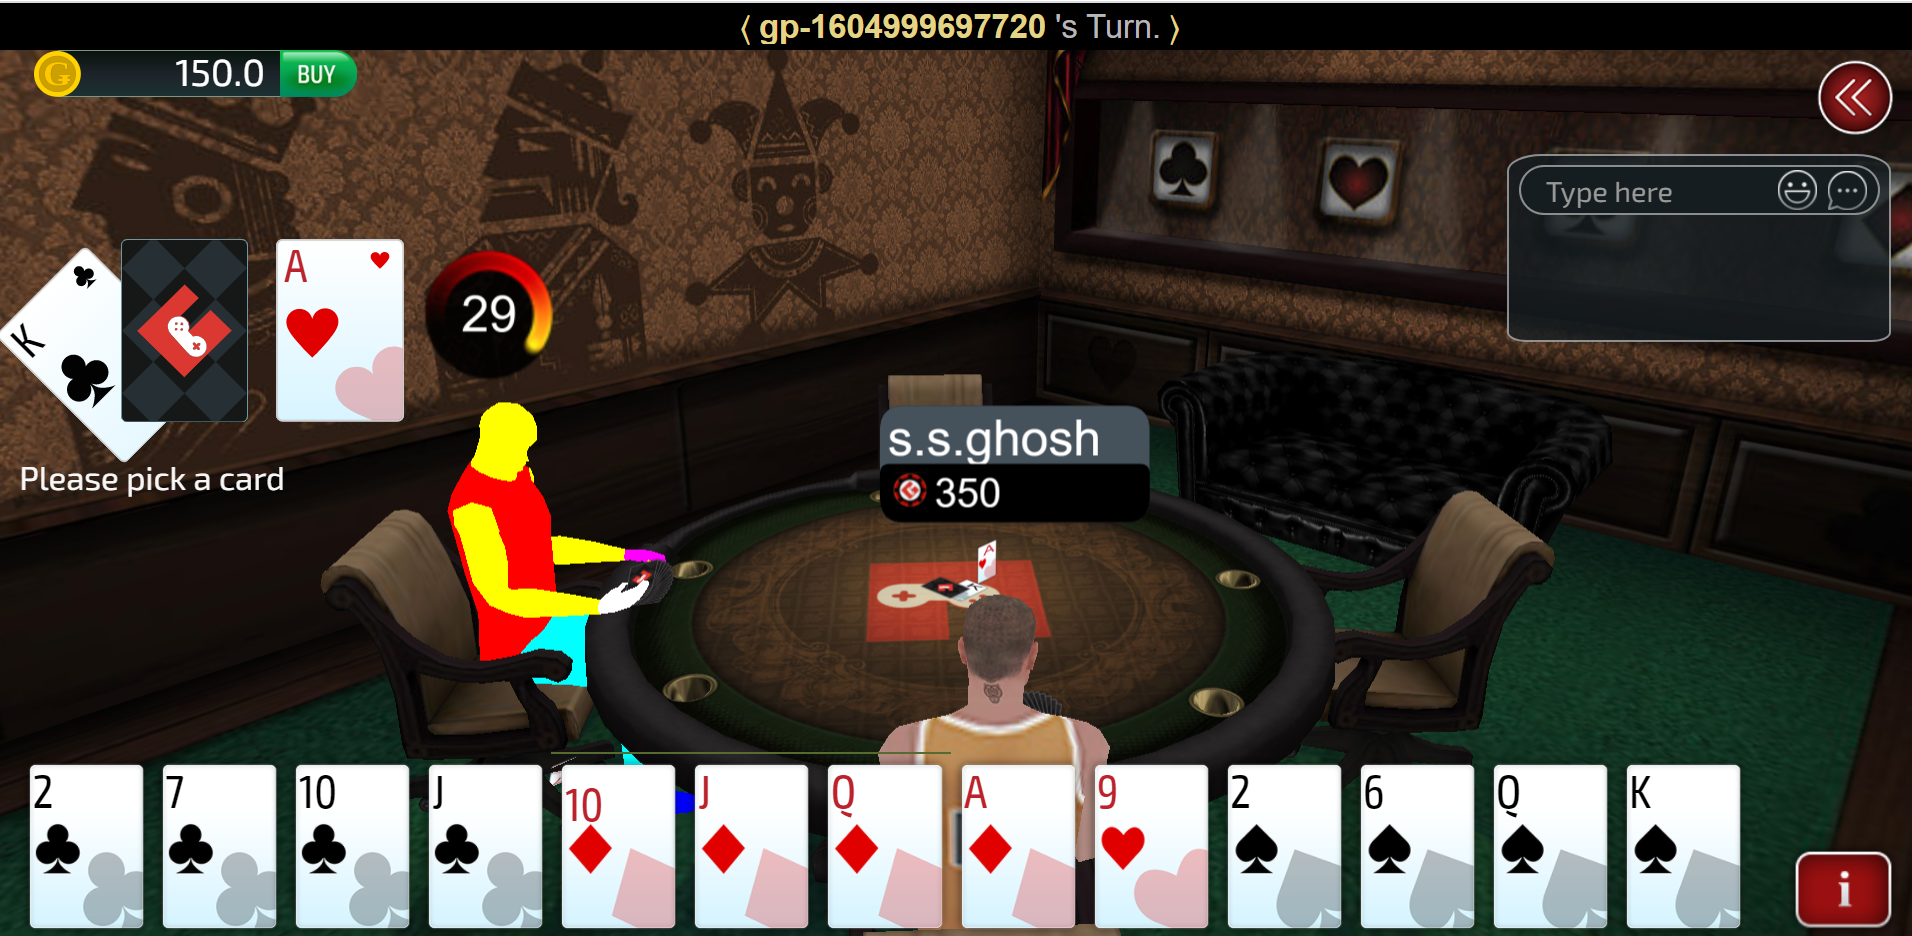 How to make the most out of by playing Gamentio rummy